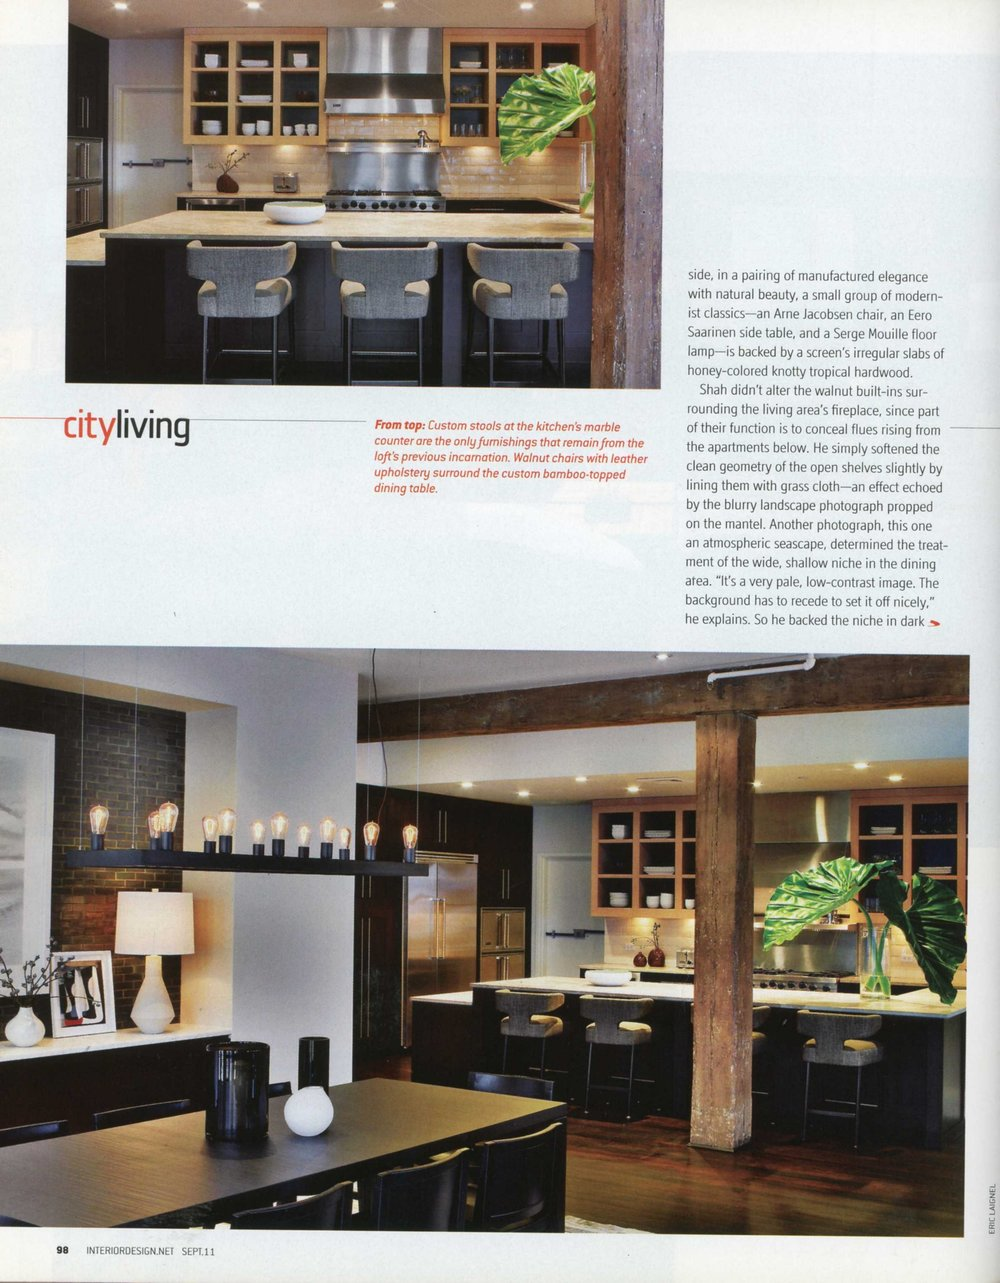 Interior Design_Nov 11_Soho Apt_Full Article_Page_6.jpg